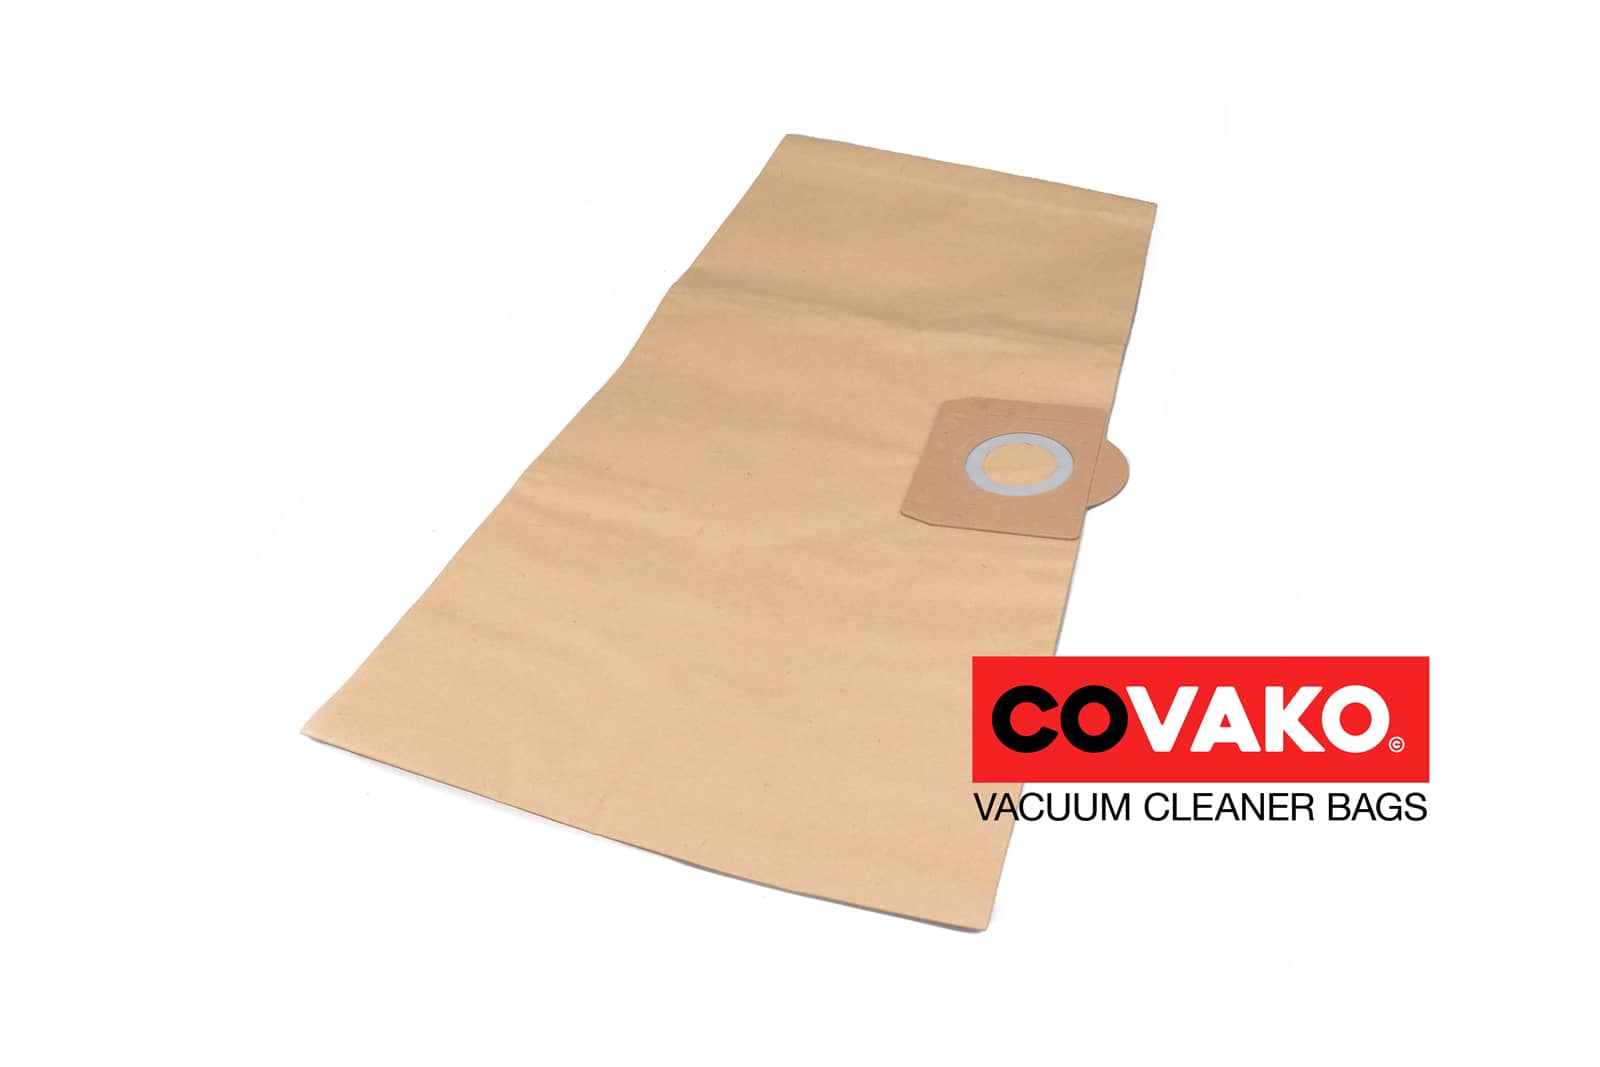 Gansow YP 1/27 W&D / Paper - Gansow vacuum cleaner bags